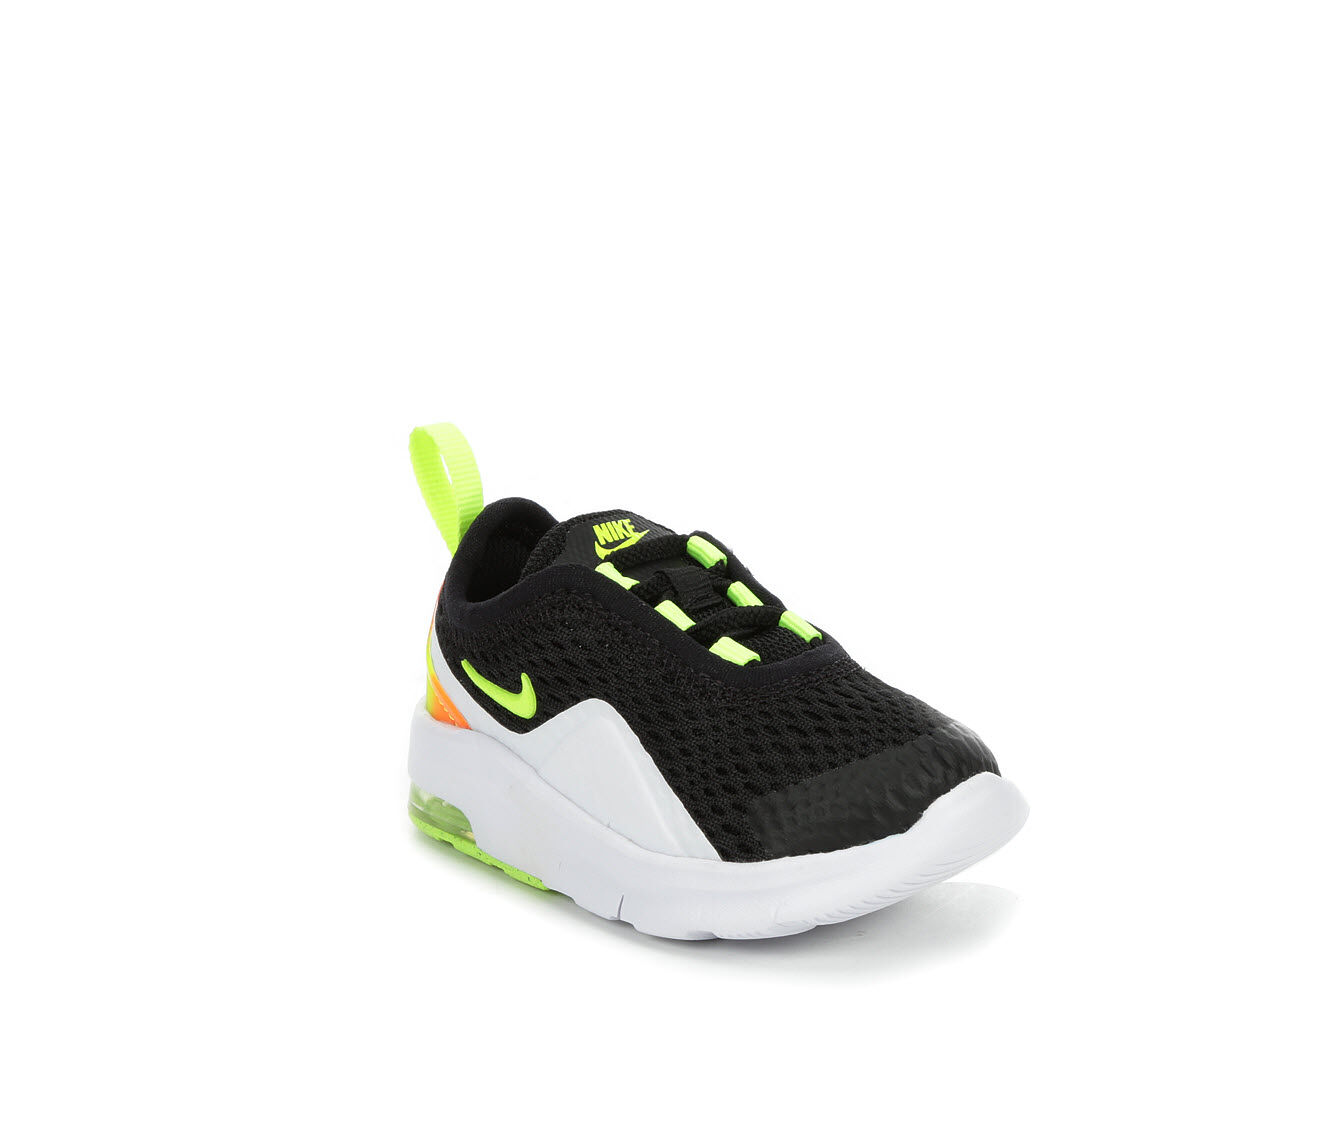 Boys' Nike Infant & Toddler Air Max Motion 2 RF Running Shoes